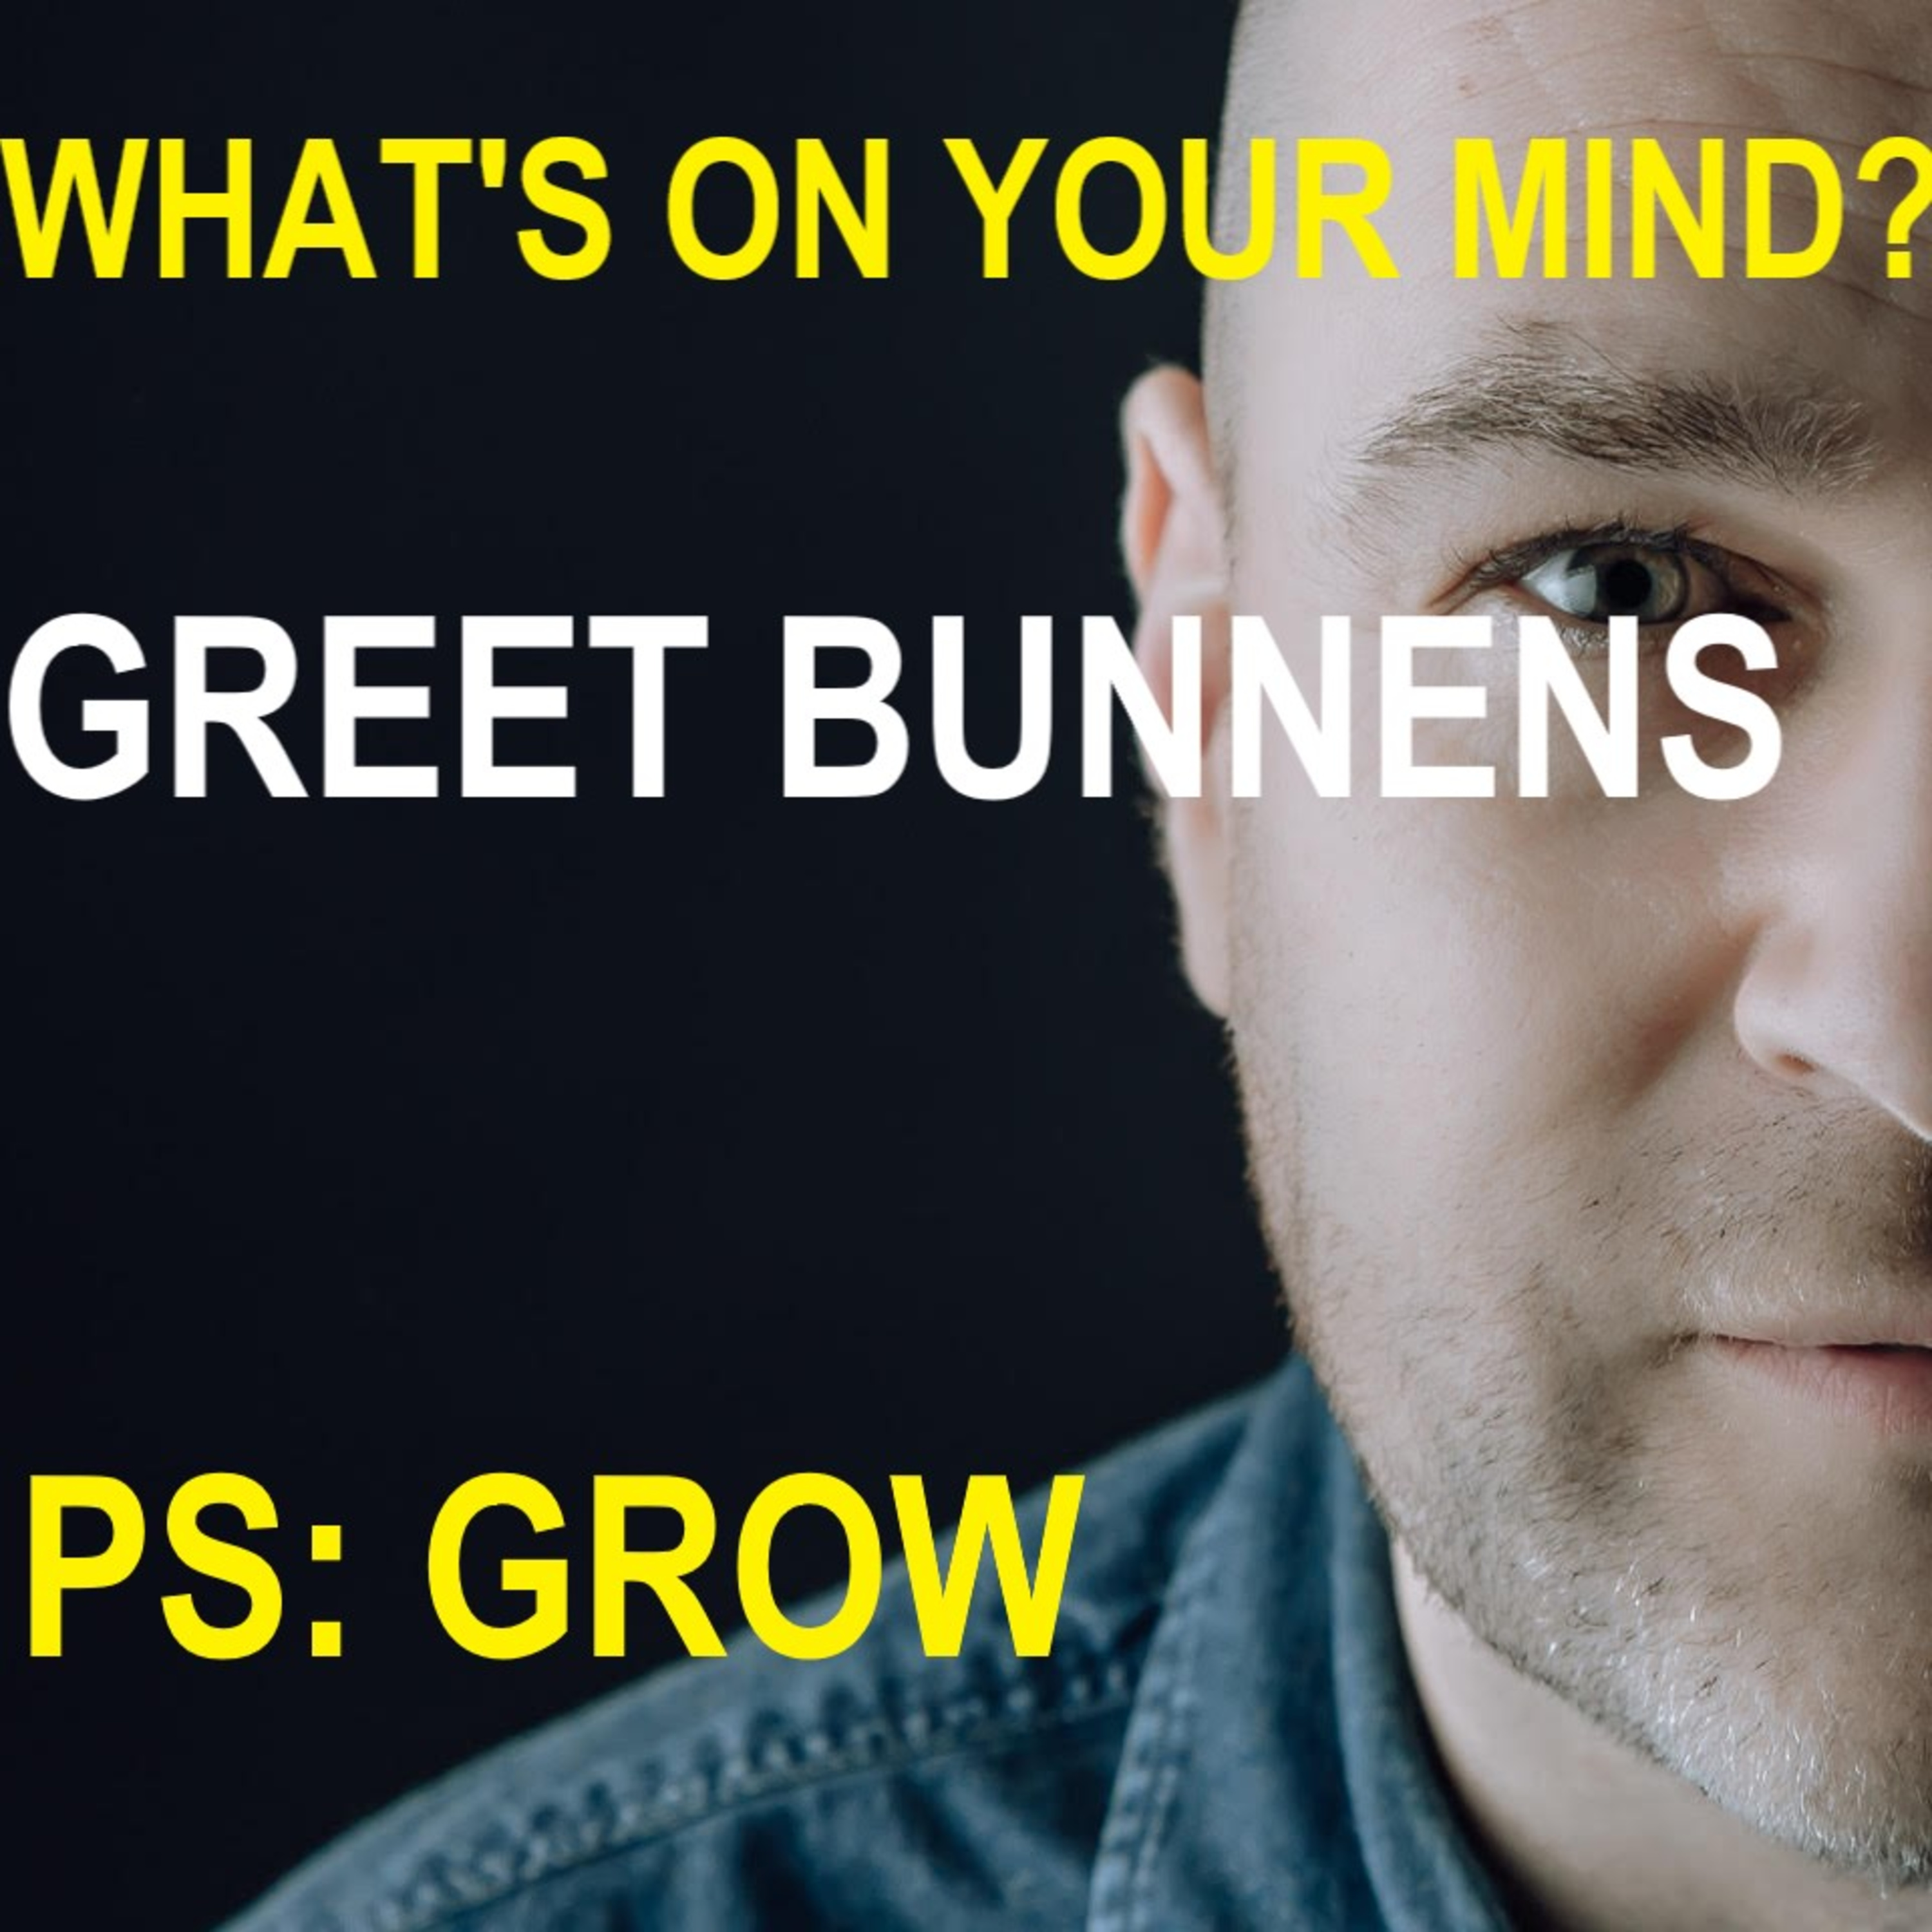 What's On Your Mind 2: Greet Bunnens